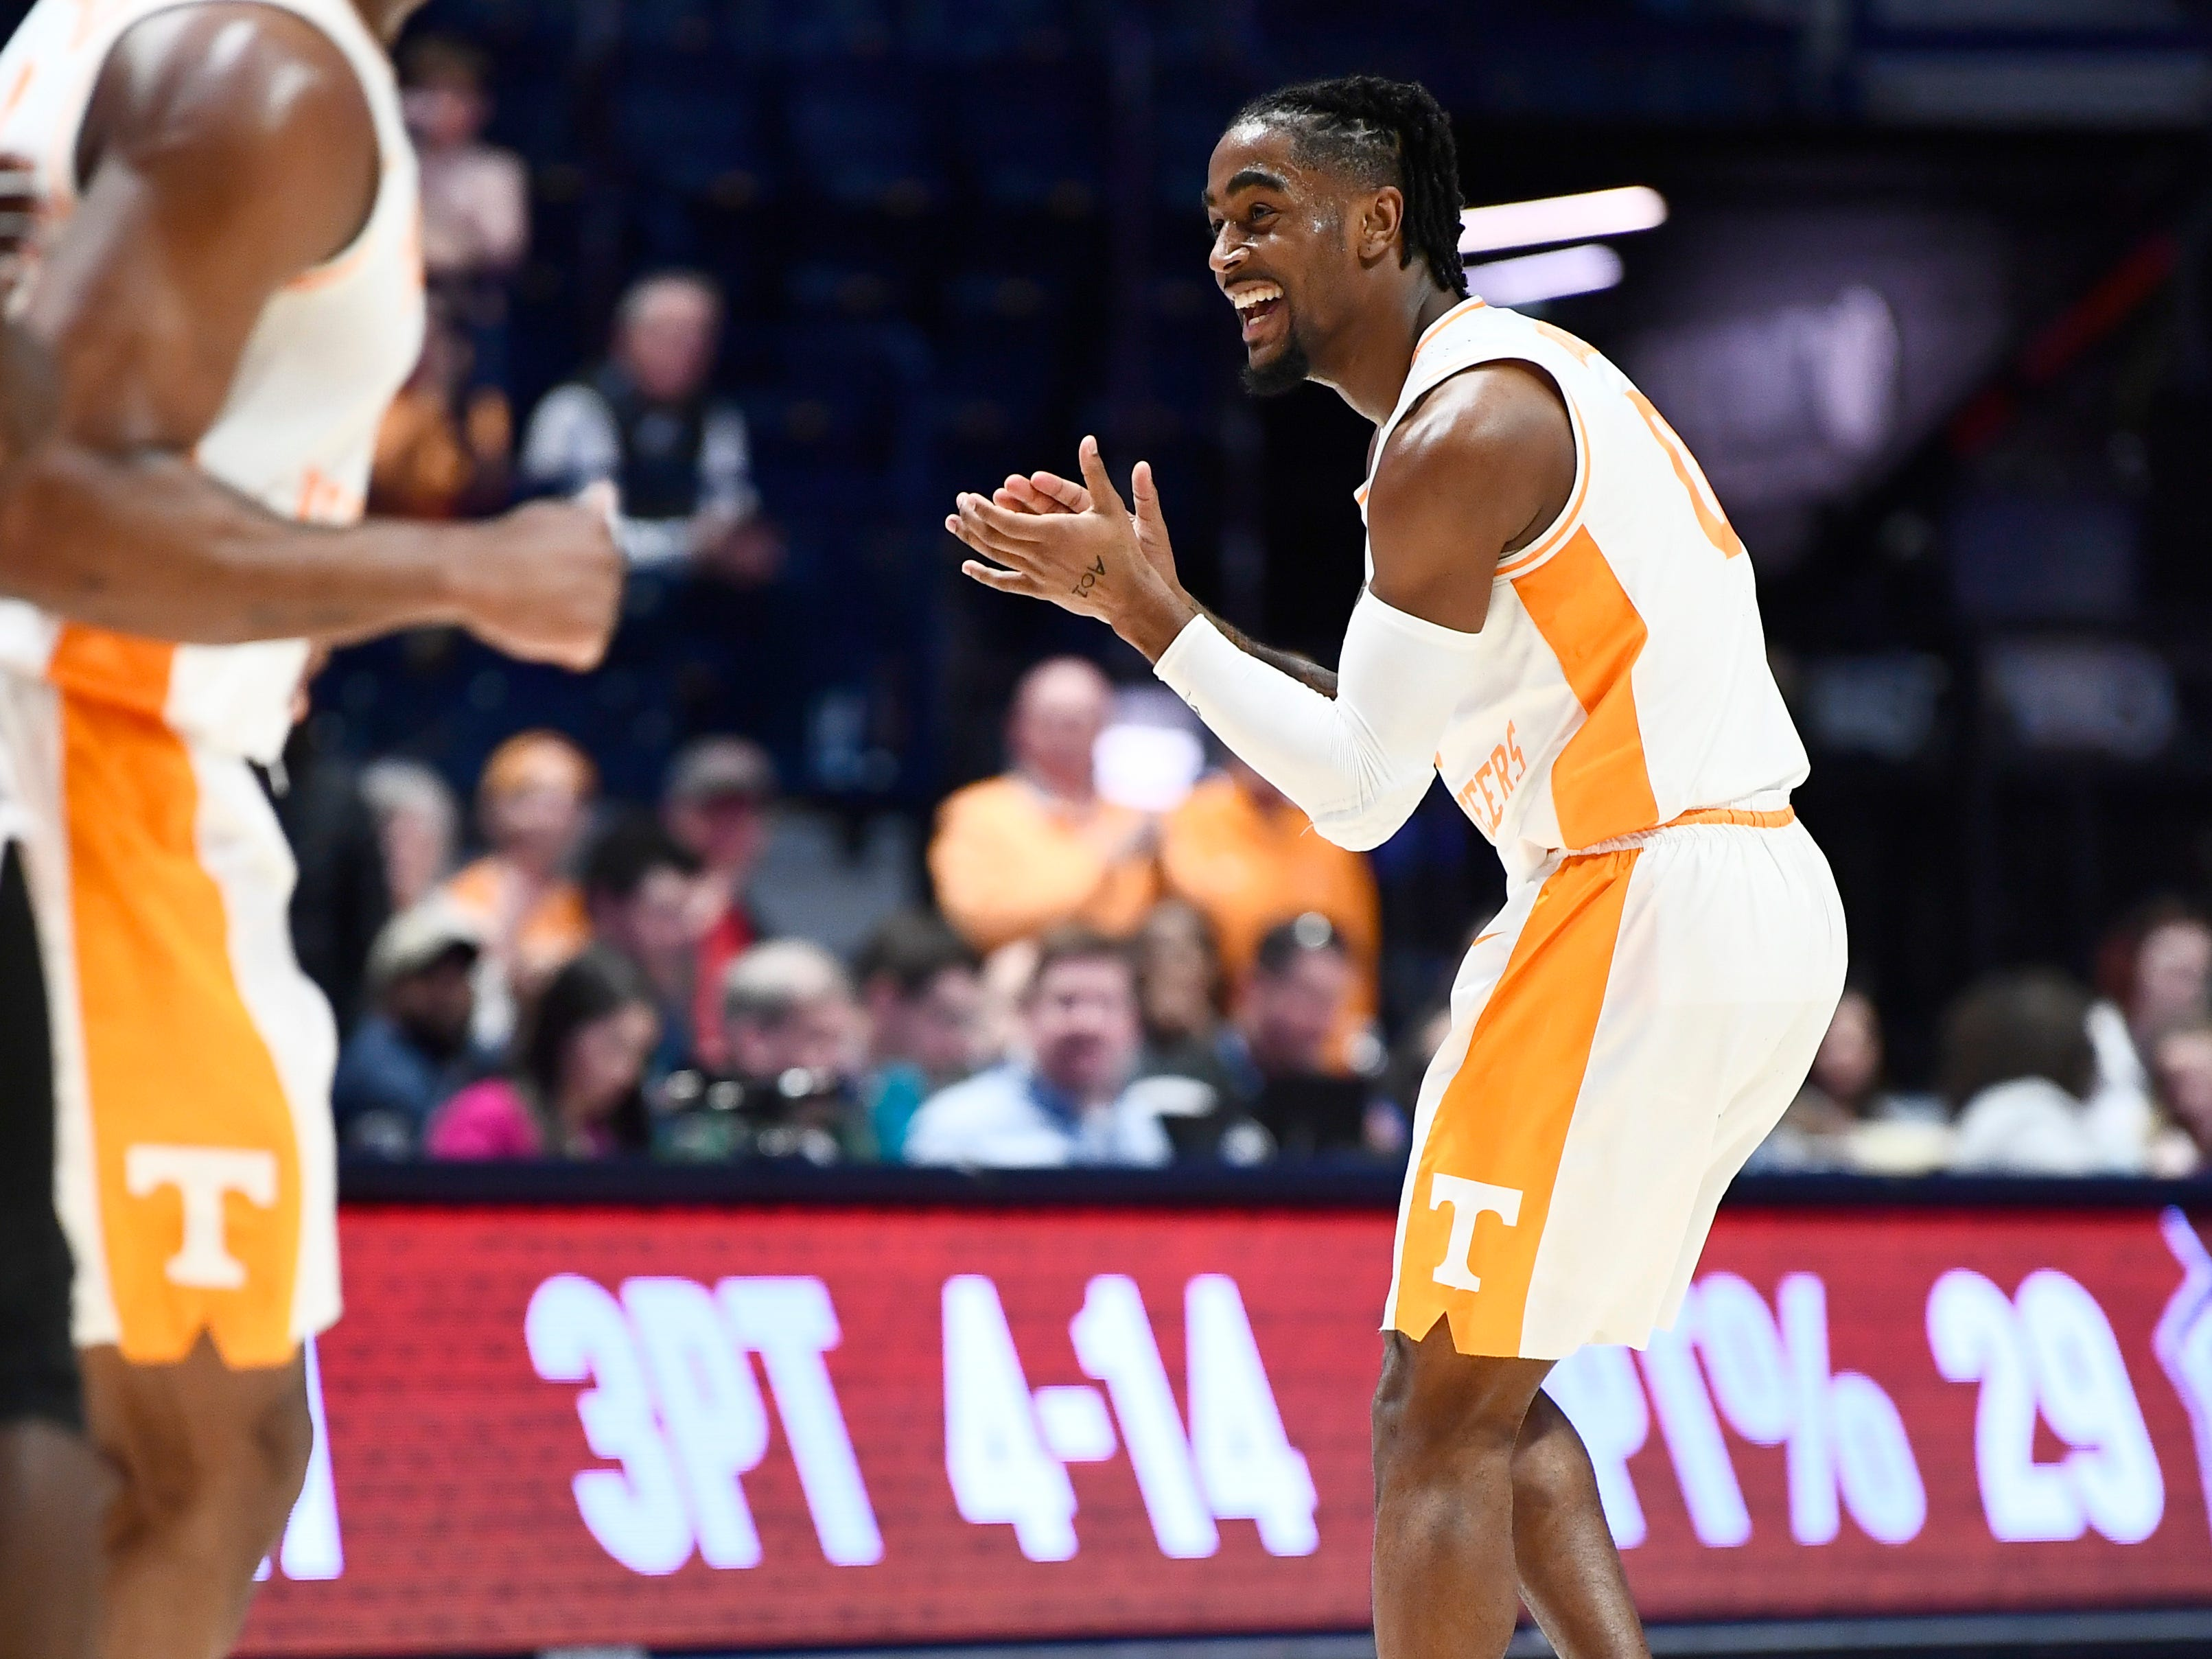 Tennessee guard Jordan Bone (0) celebrates his three-pointer during the second half of the SEC Men's Basketball Tournament game against Mississippi State at Bridgestone Arena in Nashville, Tenn., Friday, March 15, 2019.